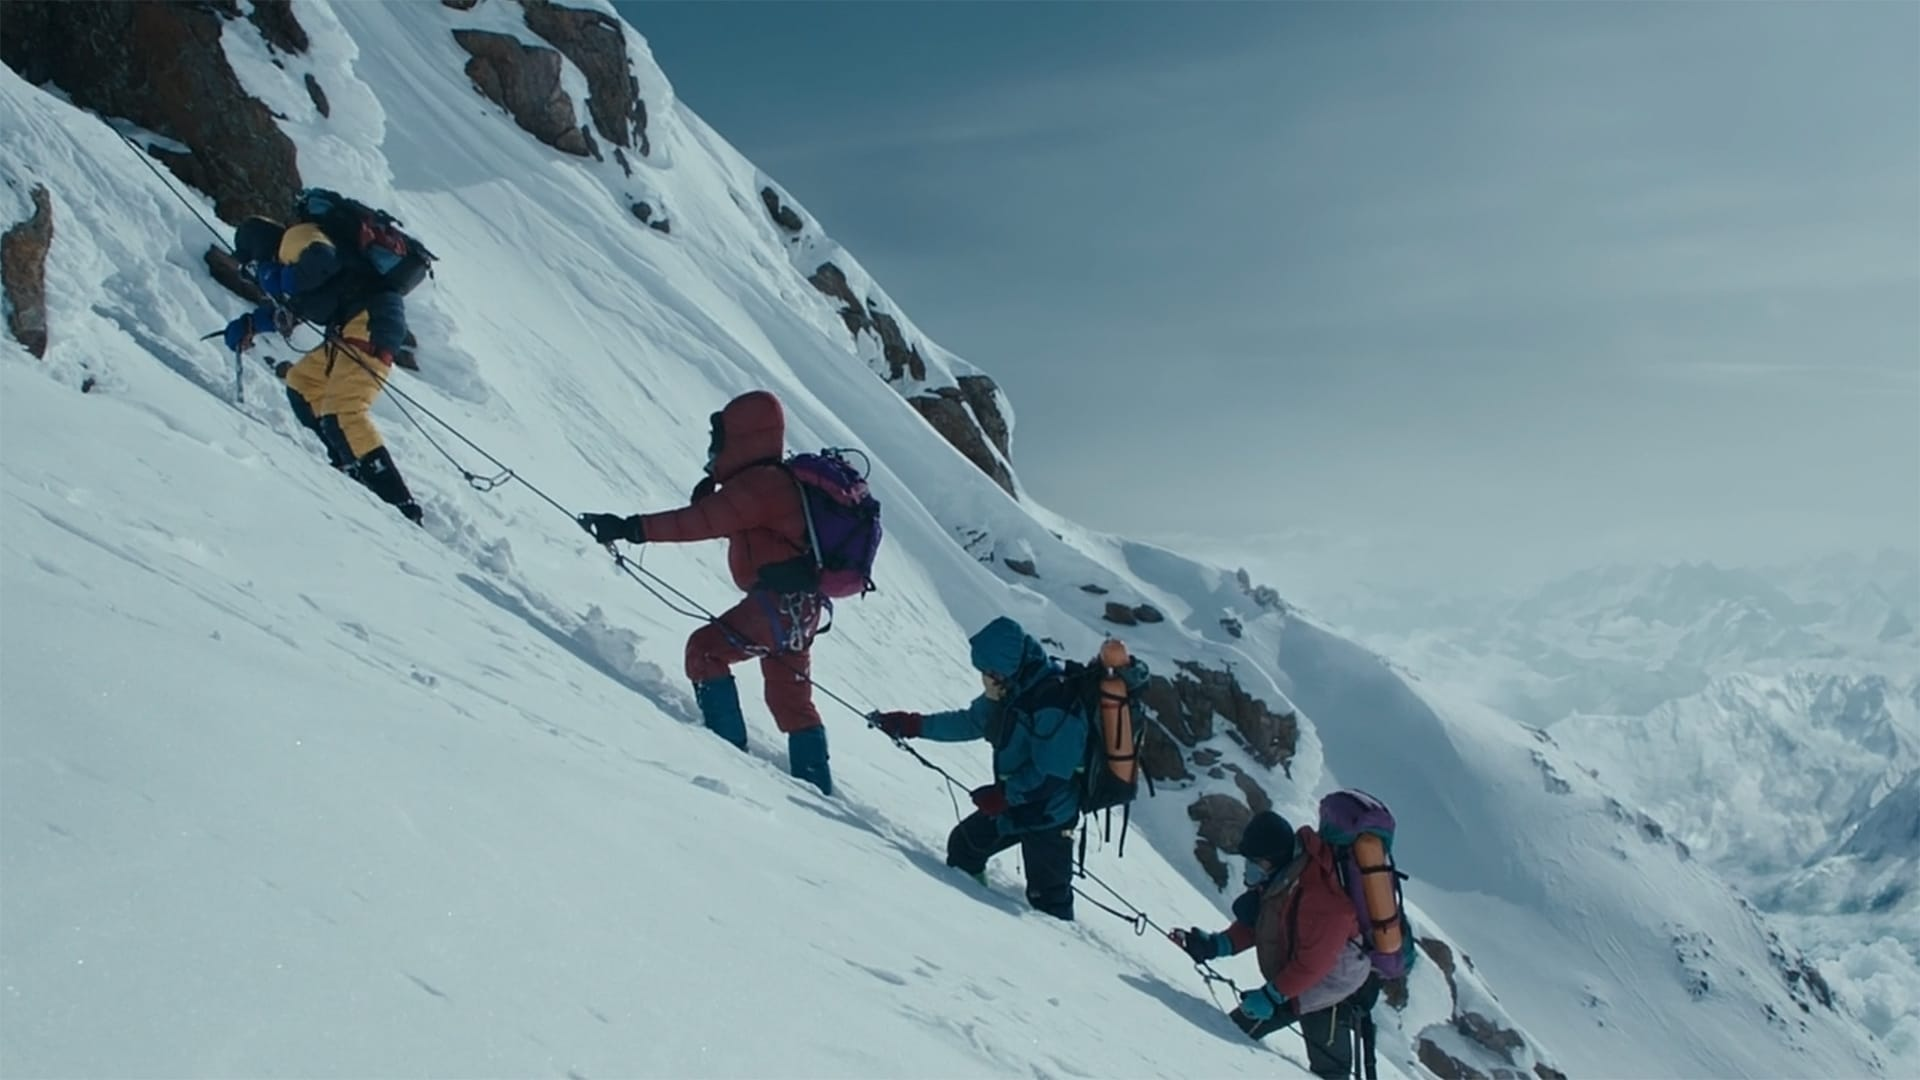 mountain climbing expeditions challenged - 1280×720